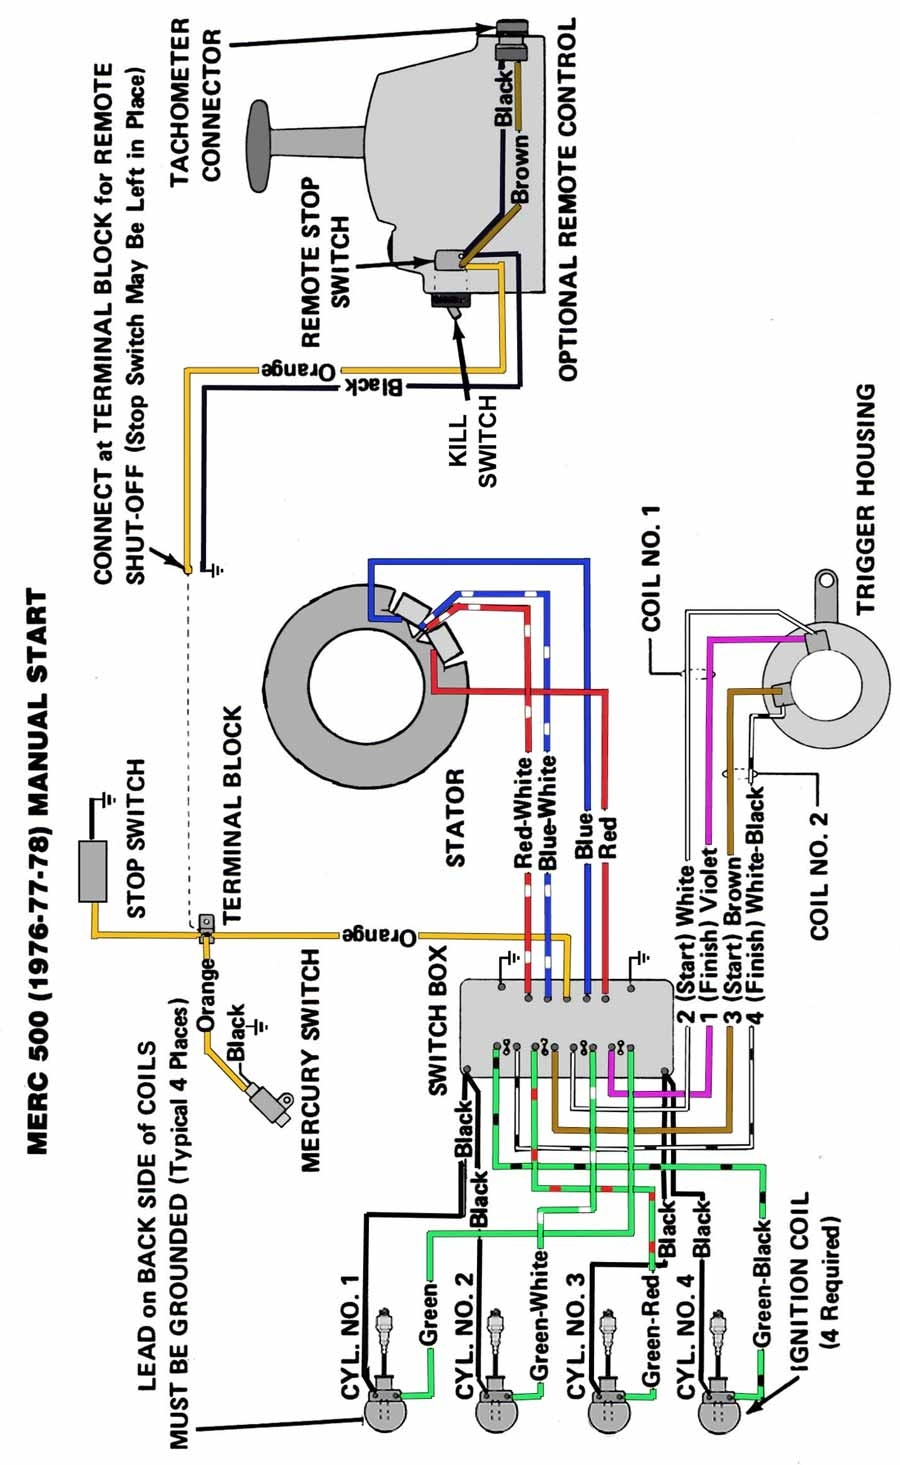 mercury outboard wiring diagrams mastertech marin intended for 76 evinrude wiring diagram?resize\=665%2C1082\&ssl\=1 mercury 200 wiring diagram wiring diagram shrutiradio mercury 200 optimax engine wiring diagram at bakdesigns.co